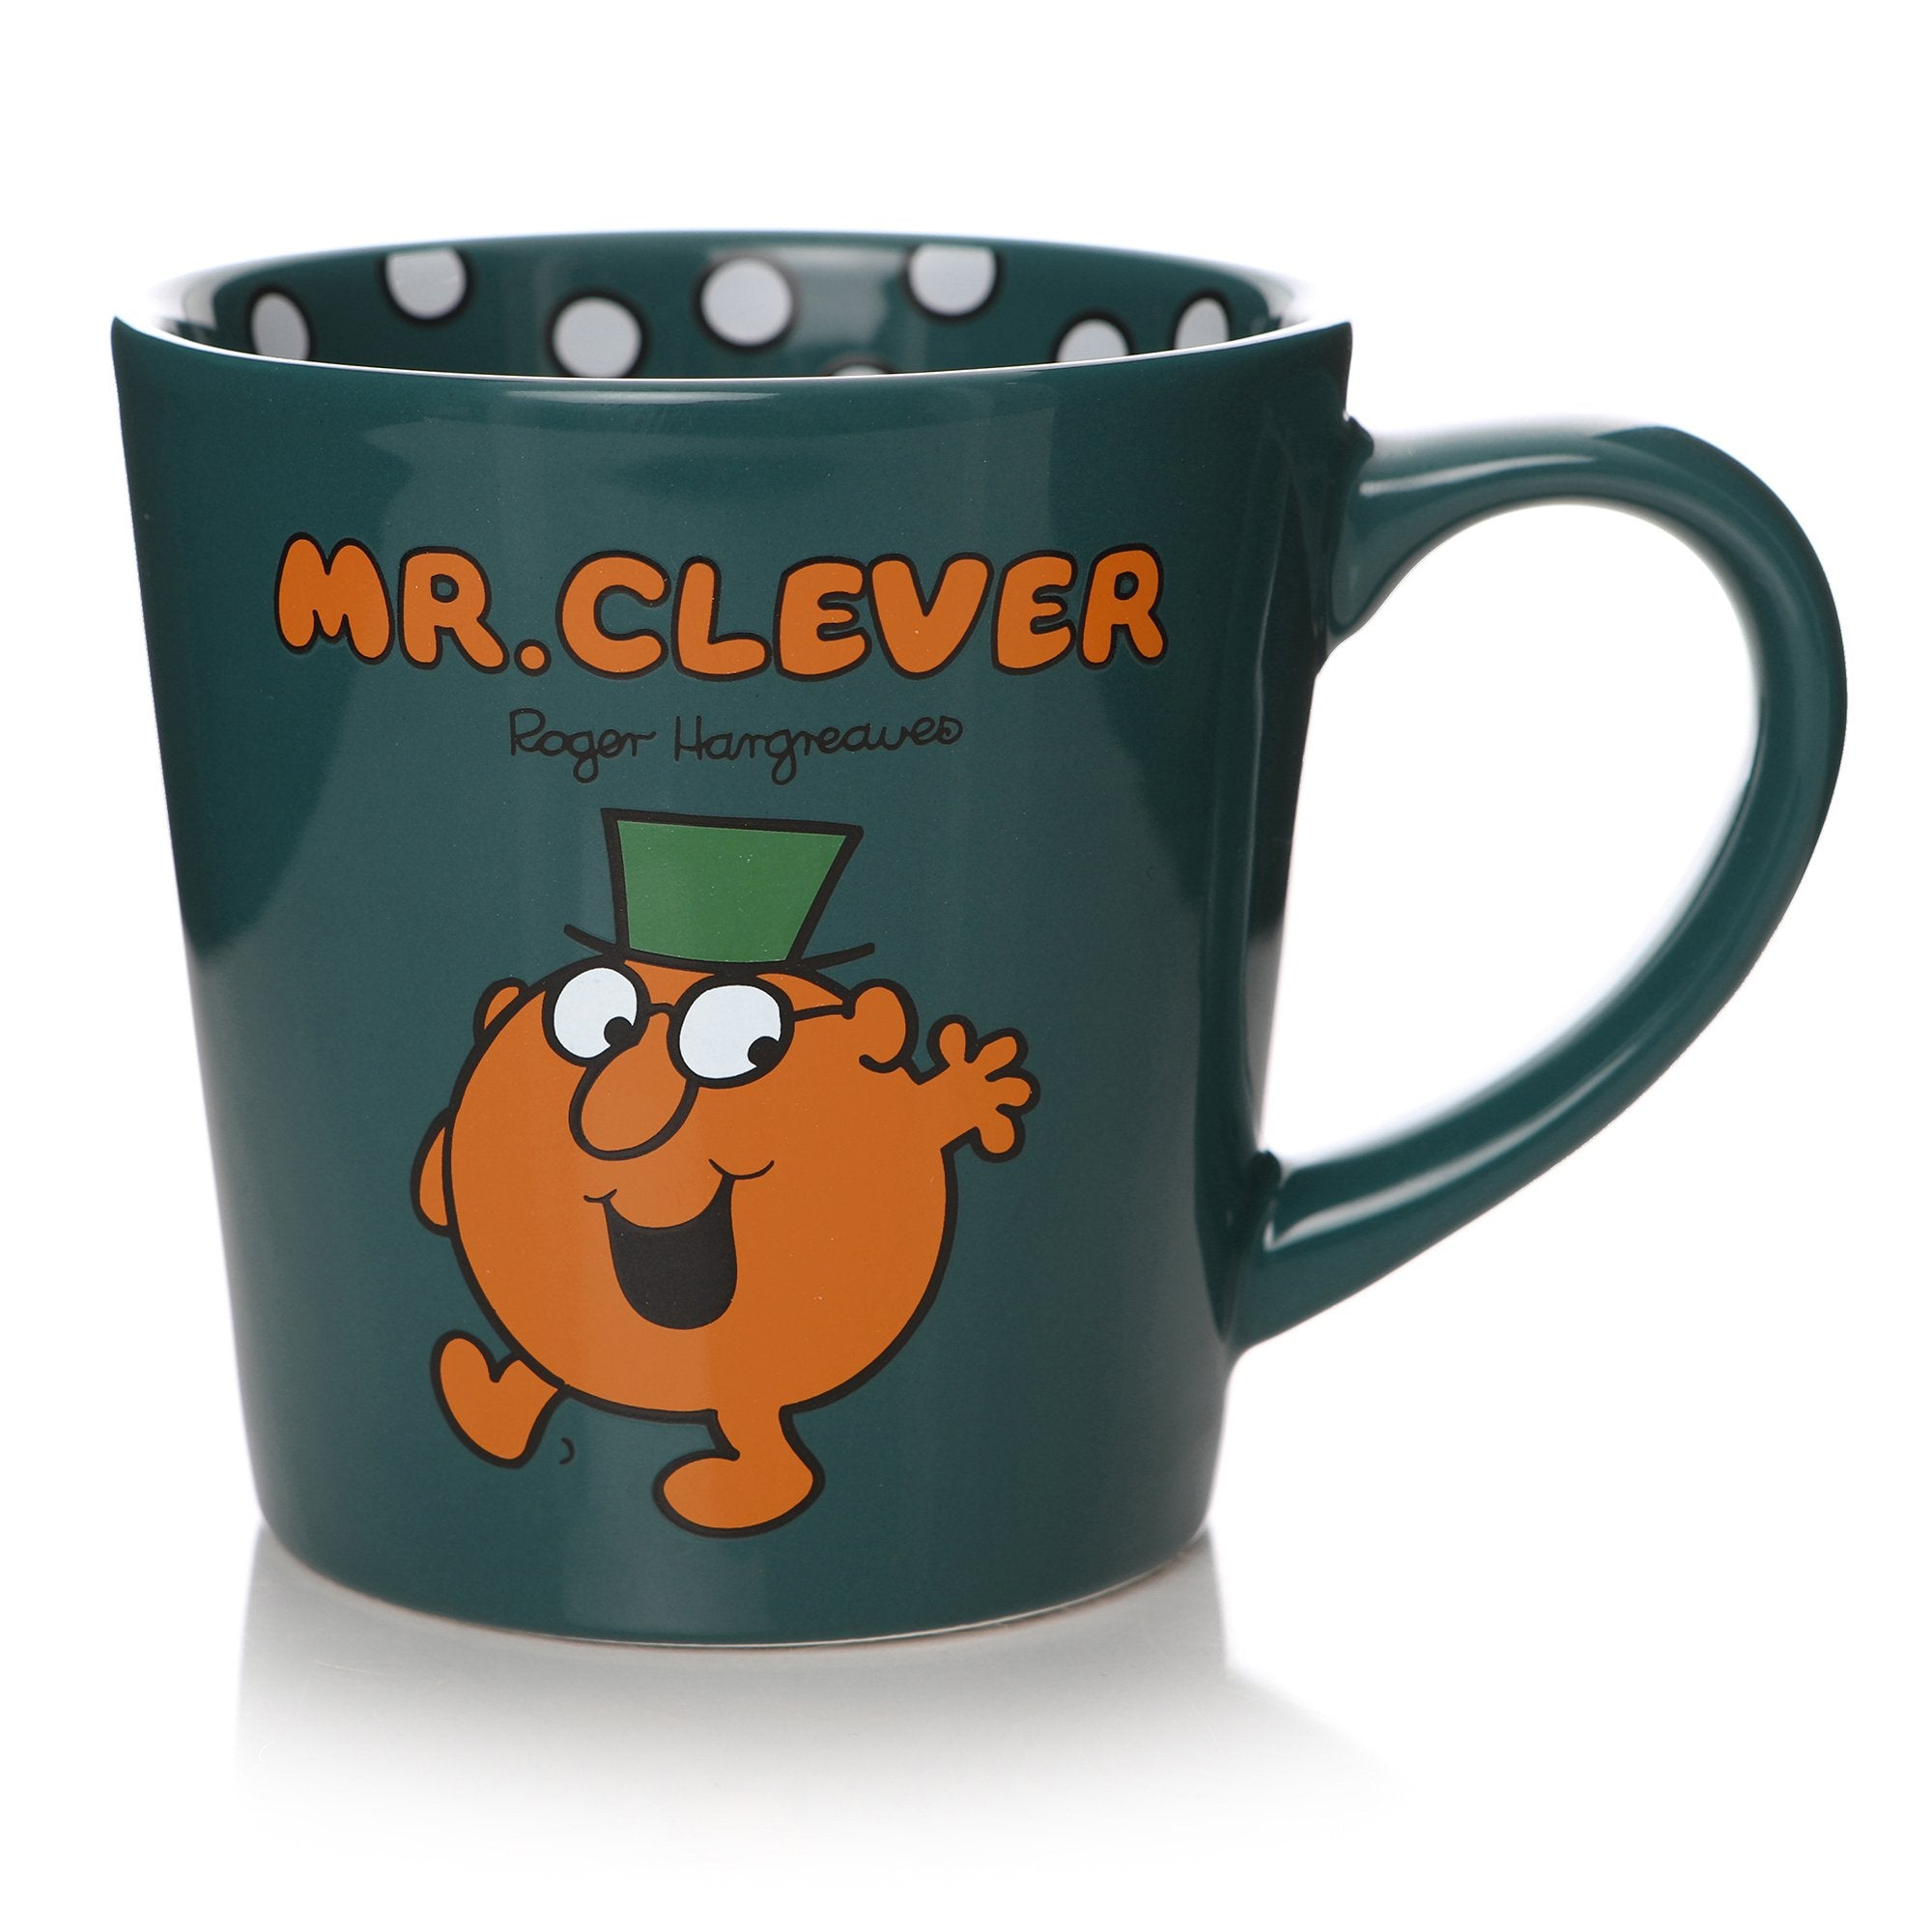 Mr. Men Little Miss Mug - Mr. Clever - Half Moon Bay US